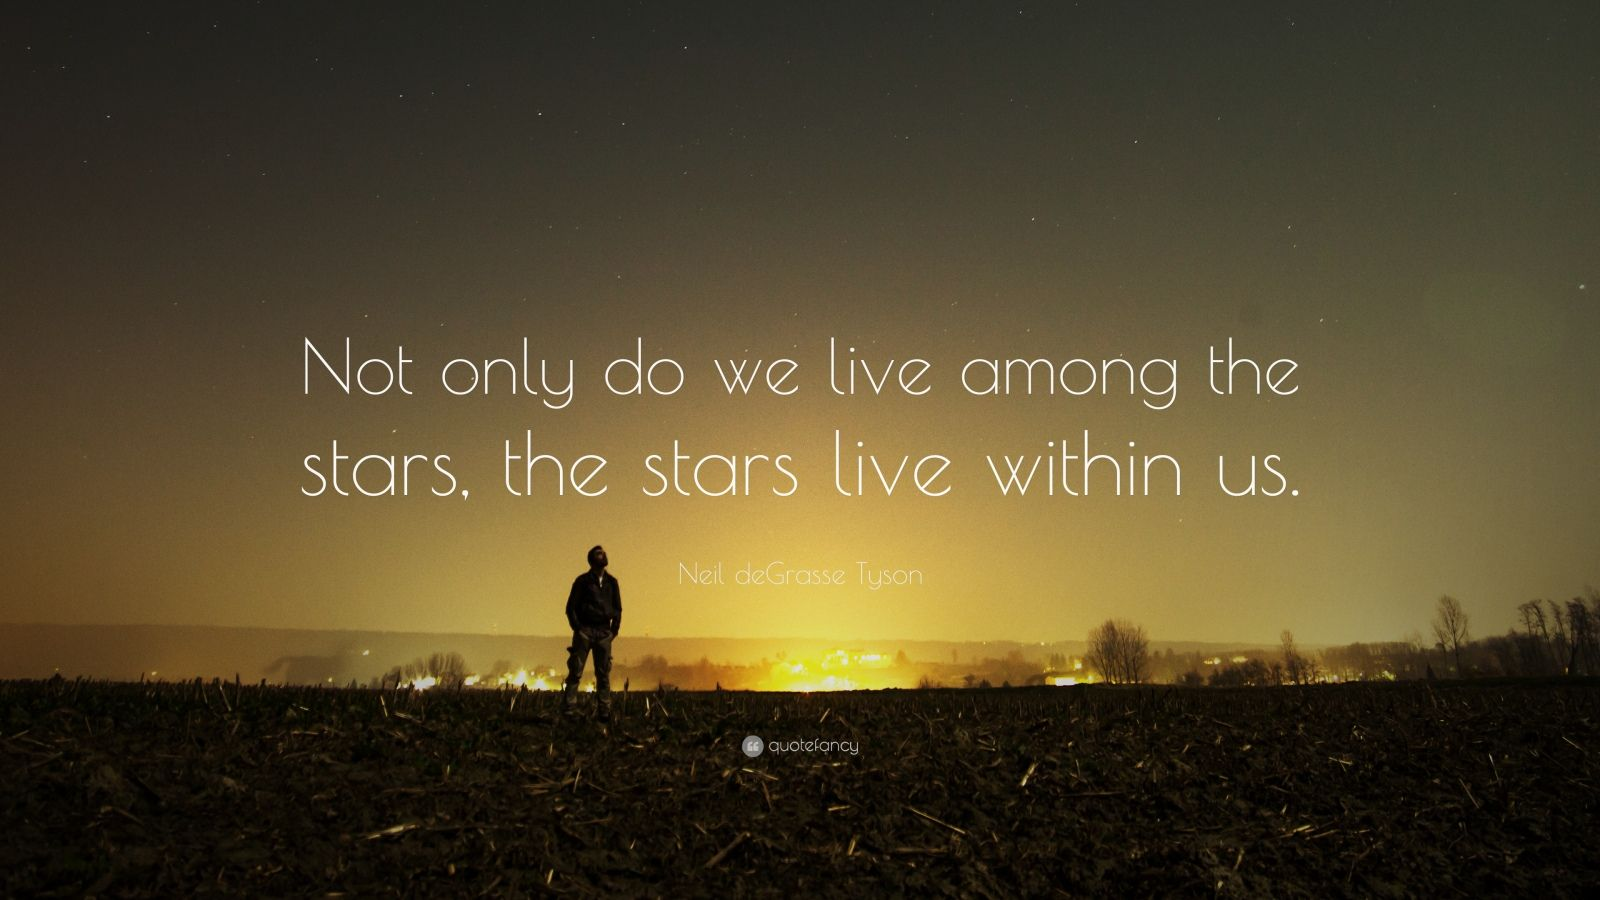 Neil Degrasse Tyson Quote Not Only Do We Live Among The Stars The Stars Live Within Us Neil Degrasse Tyson Quote Neil Degrasse Tyson Tyson